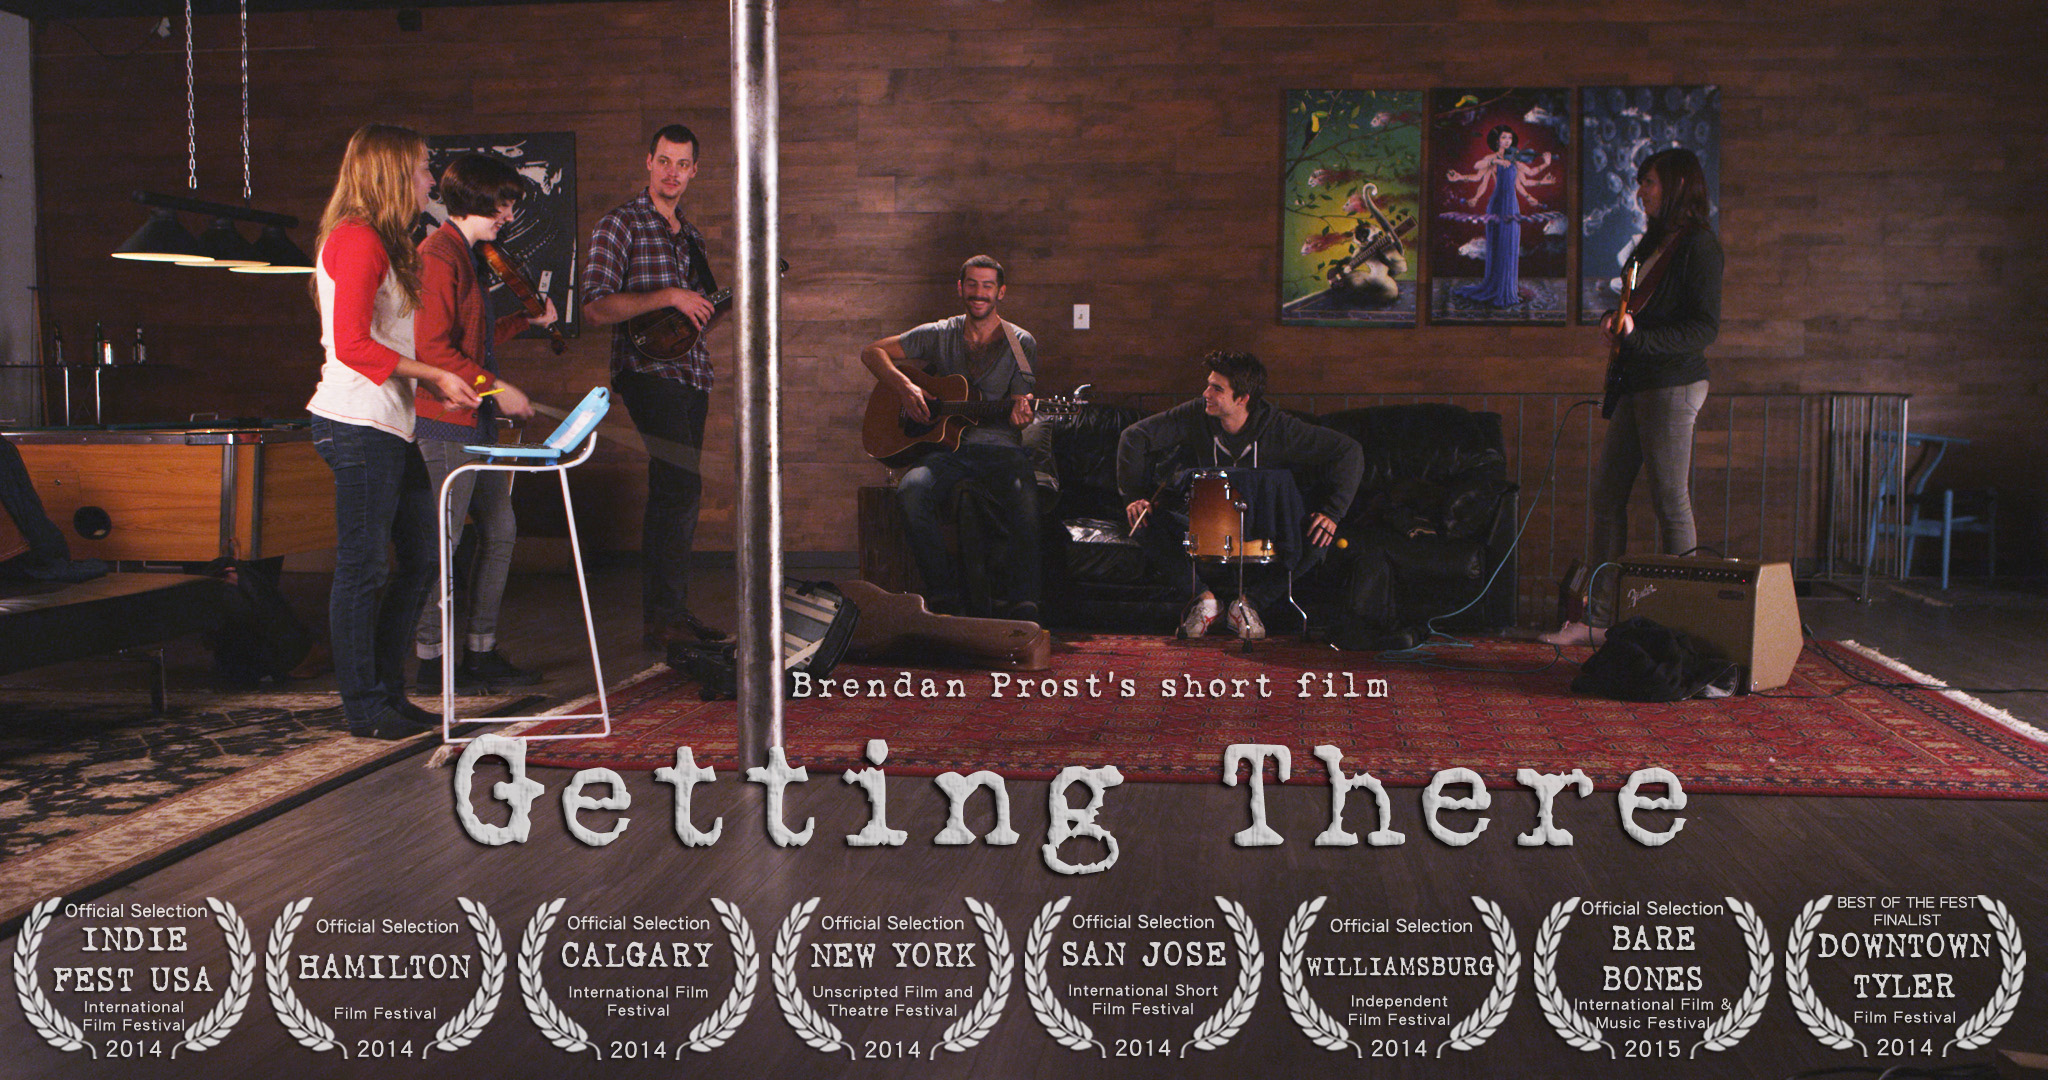 GETTING THERE - Narrative Musical Drama / 2014 / 14mins